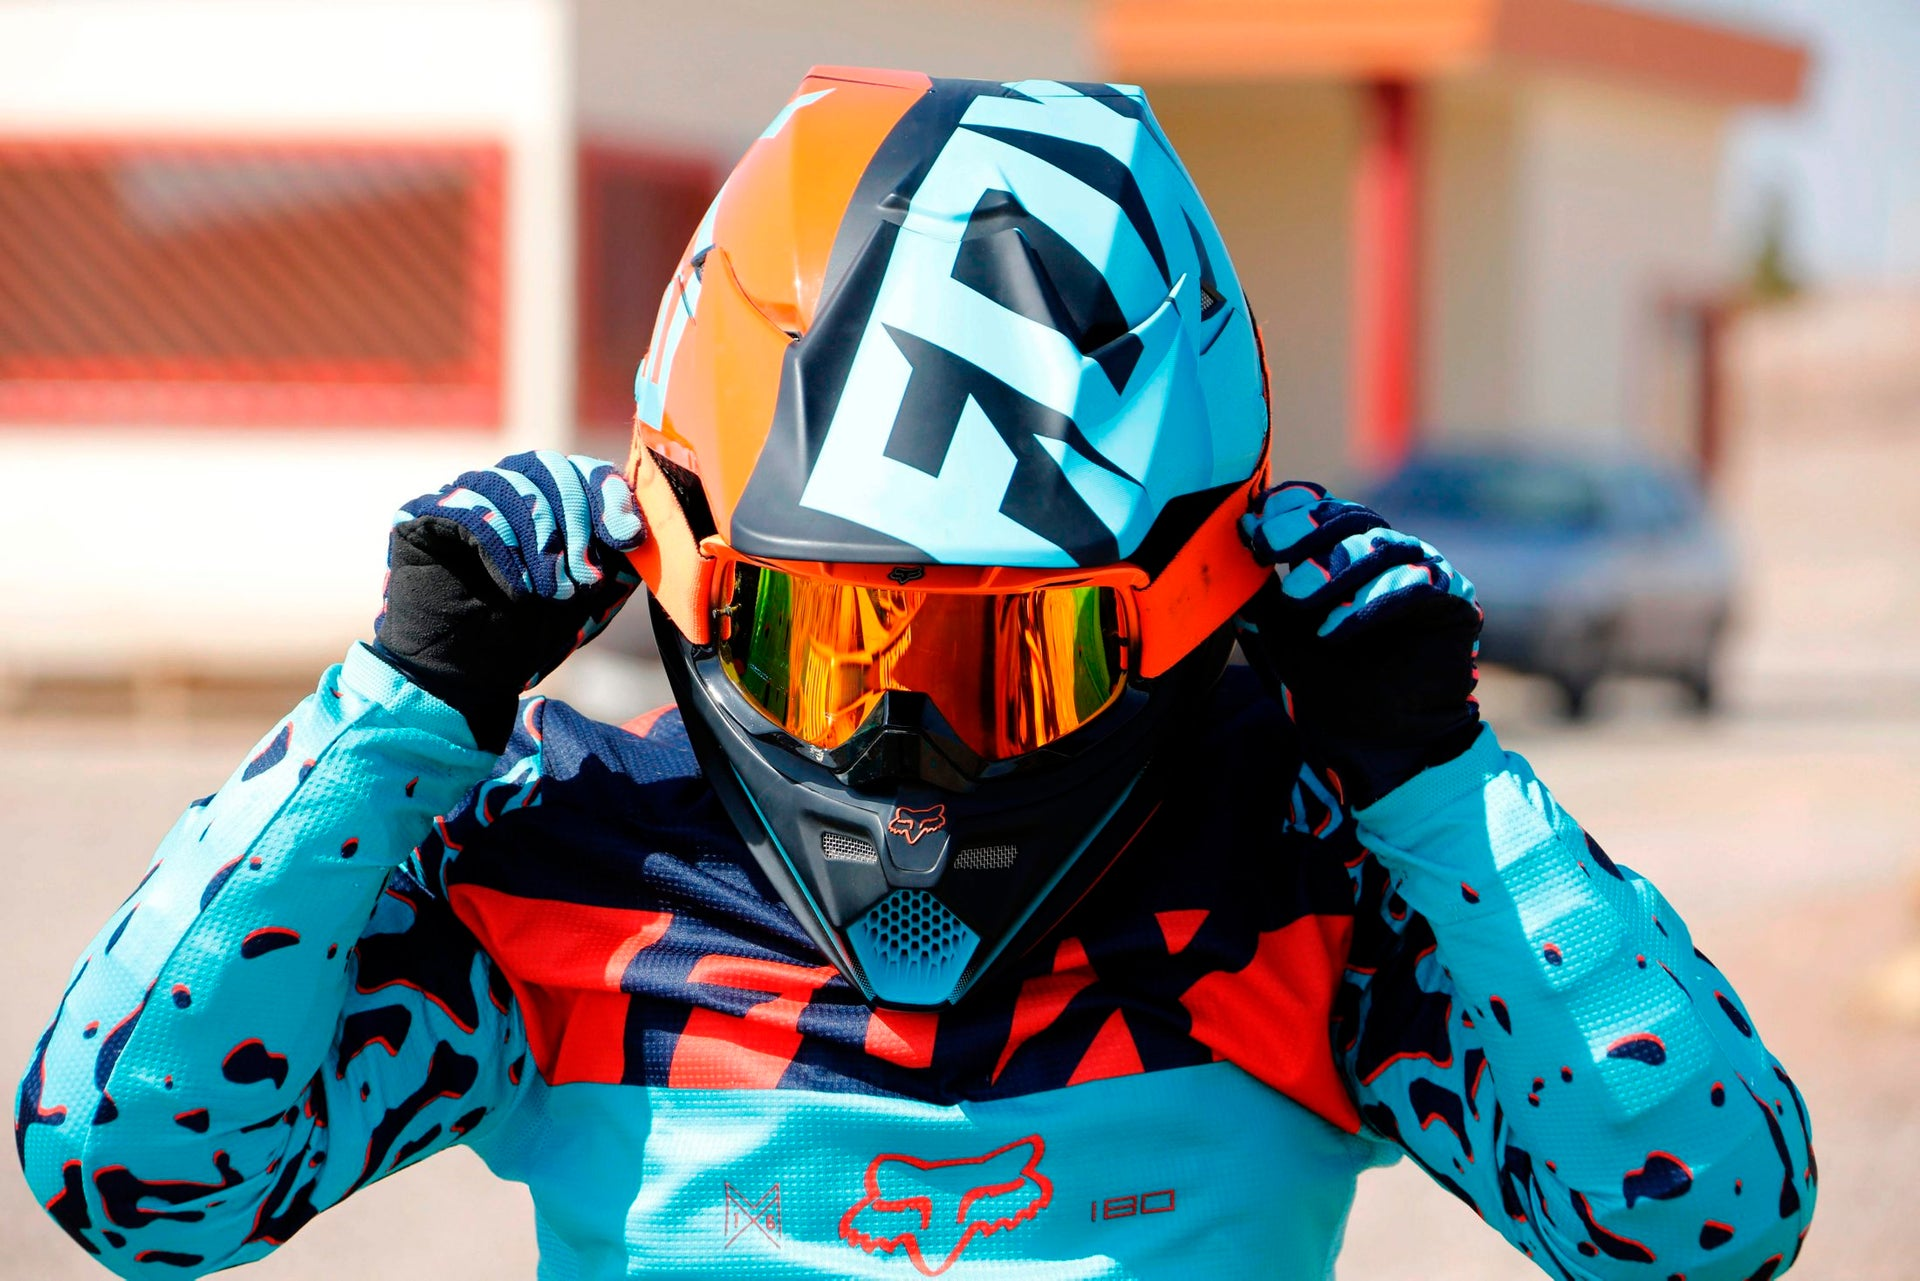 Iranian motorbike champion Behnaz Shafiei adjusts her helmet during a training session in Parand, southwest of Tehran, on February 27, 2017.